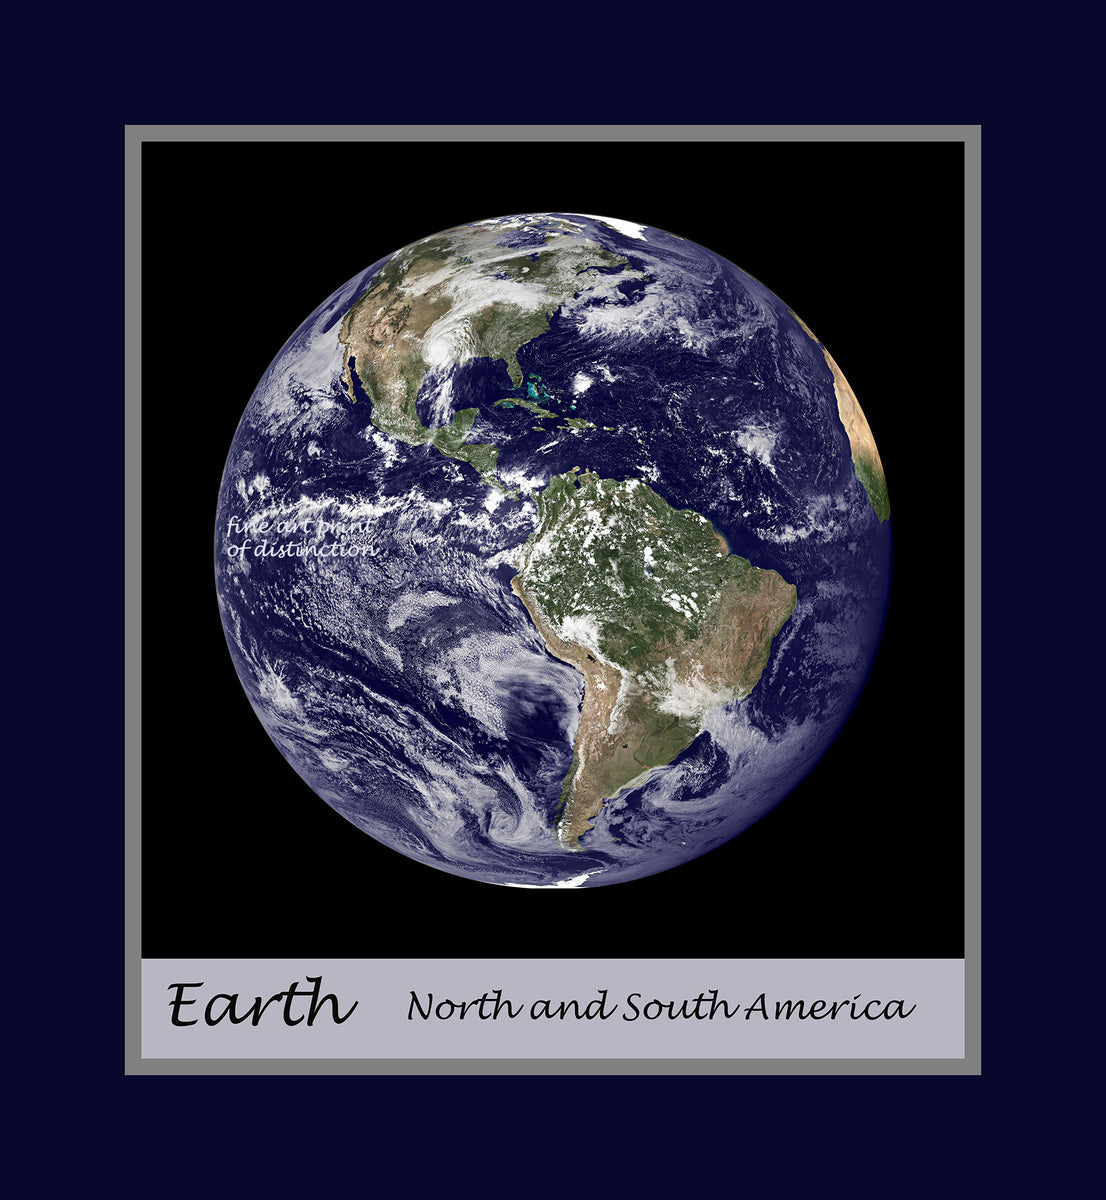 Premium Poster of Planet Earth as seen from outer space with a large Hurricane covering Texas